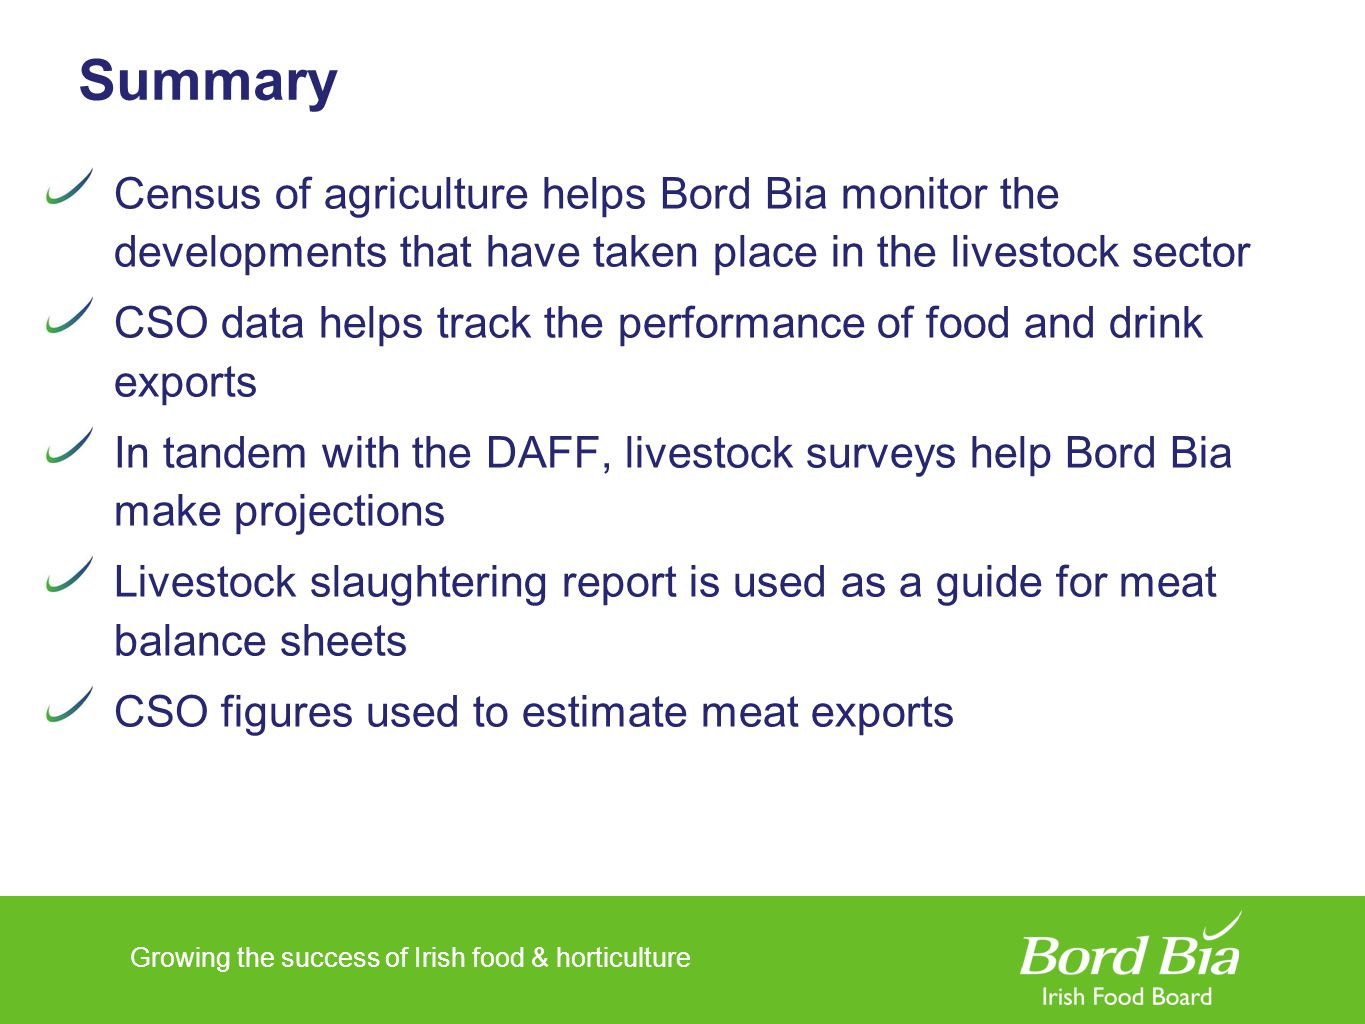 Growing the success of Irish food & horticulture Summary Census of agriculture helps Bord Bia monitor the developments that have taken place in the livestock sector CSO data helps track the performance of food and drink exports In tandem with the DAFF, livestock surveys help Bord Bia make projections Livestock slaughtering report is used as a guide for meat balance sheets CSO figures used to estimate meat exports